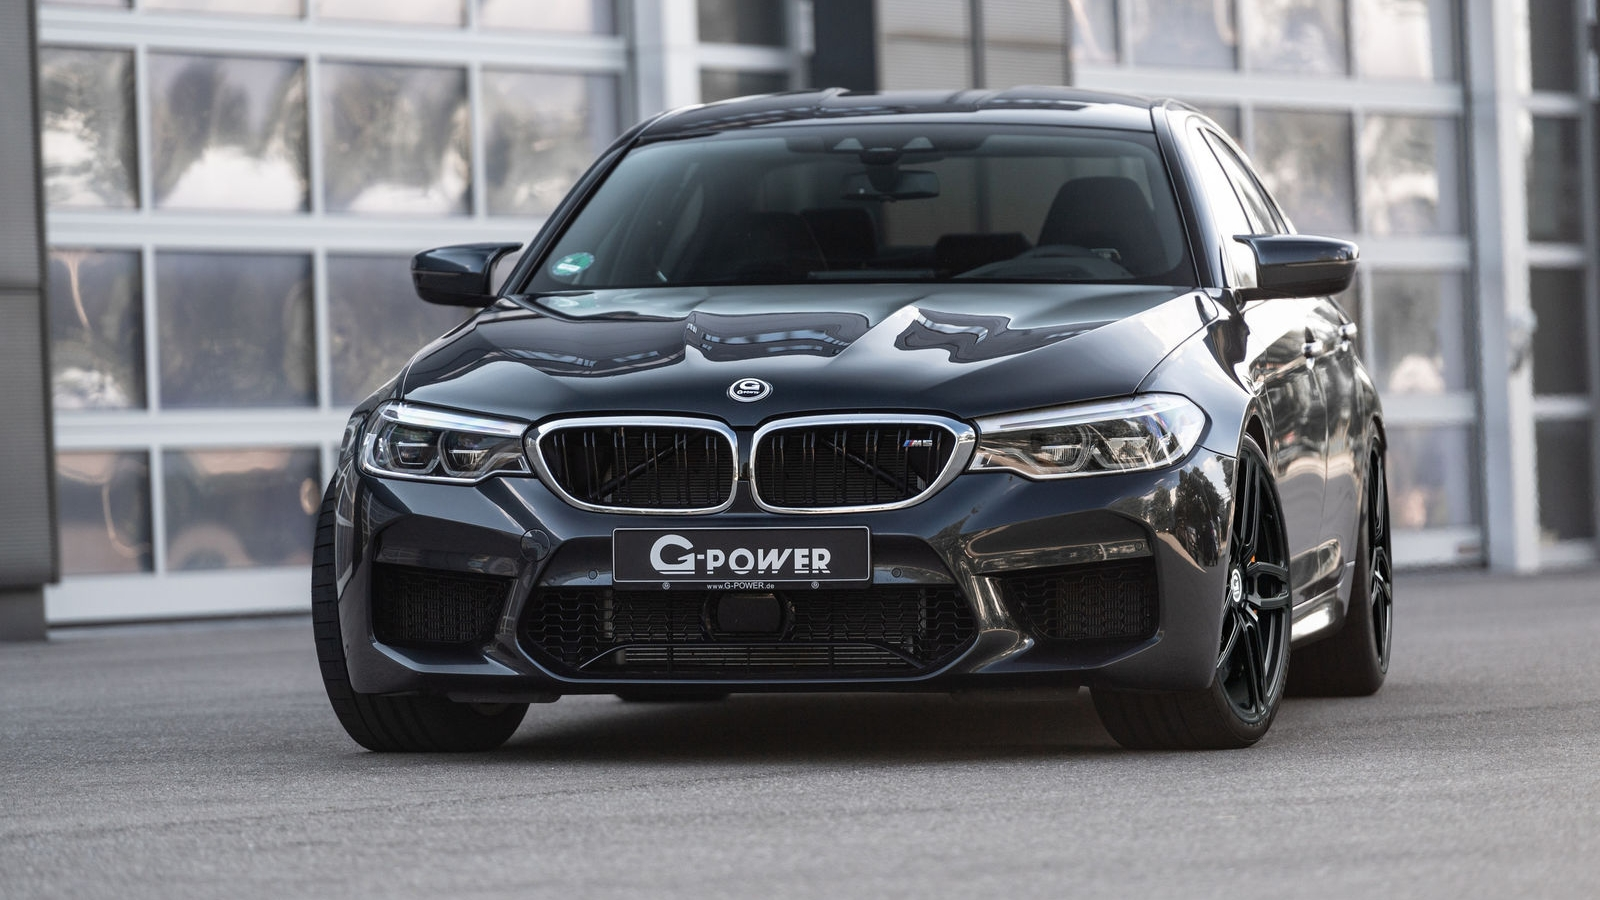 2018 Bmw M5 By G Power Top Speed